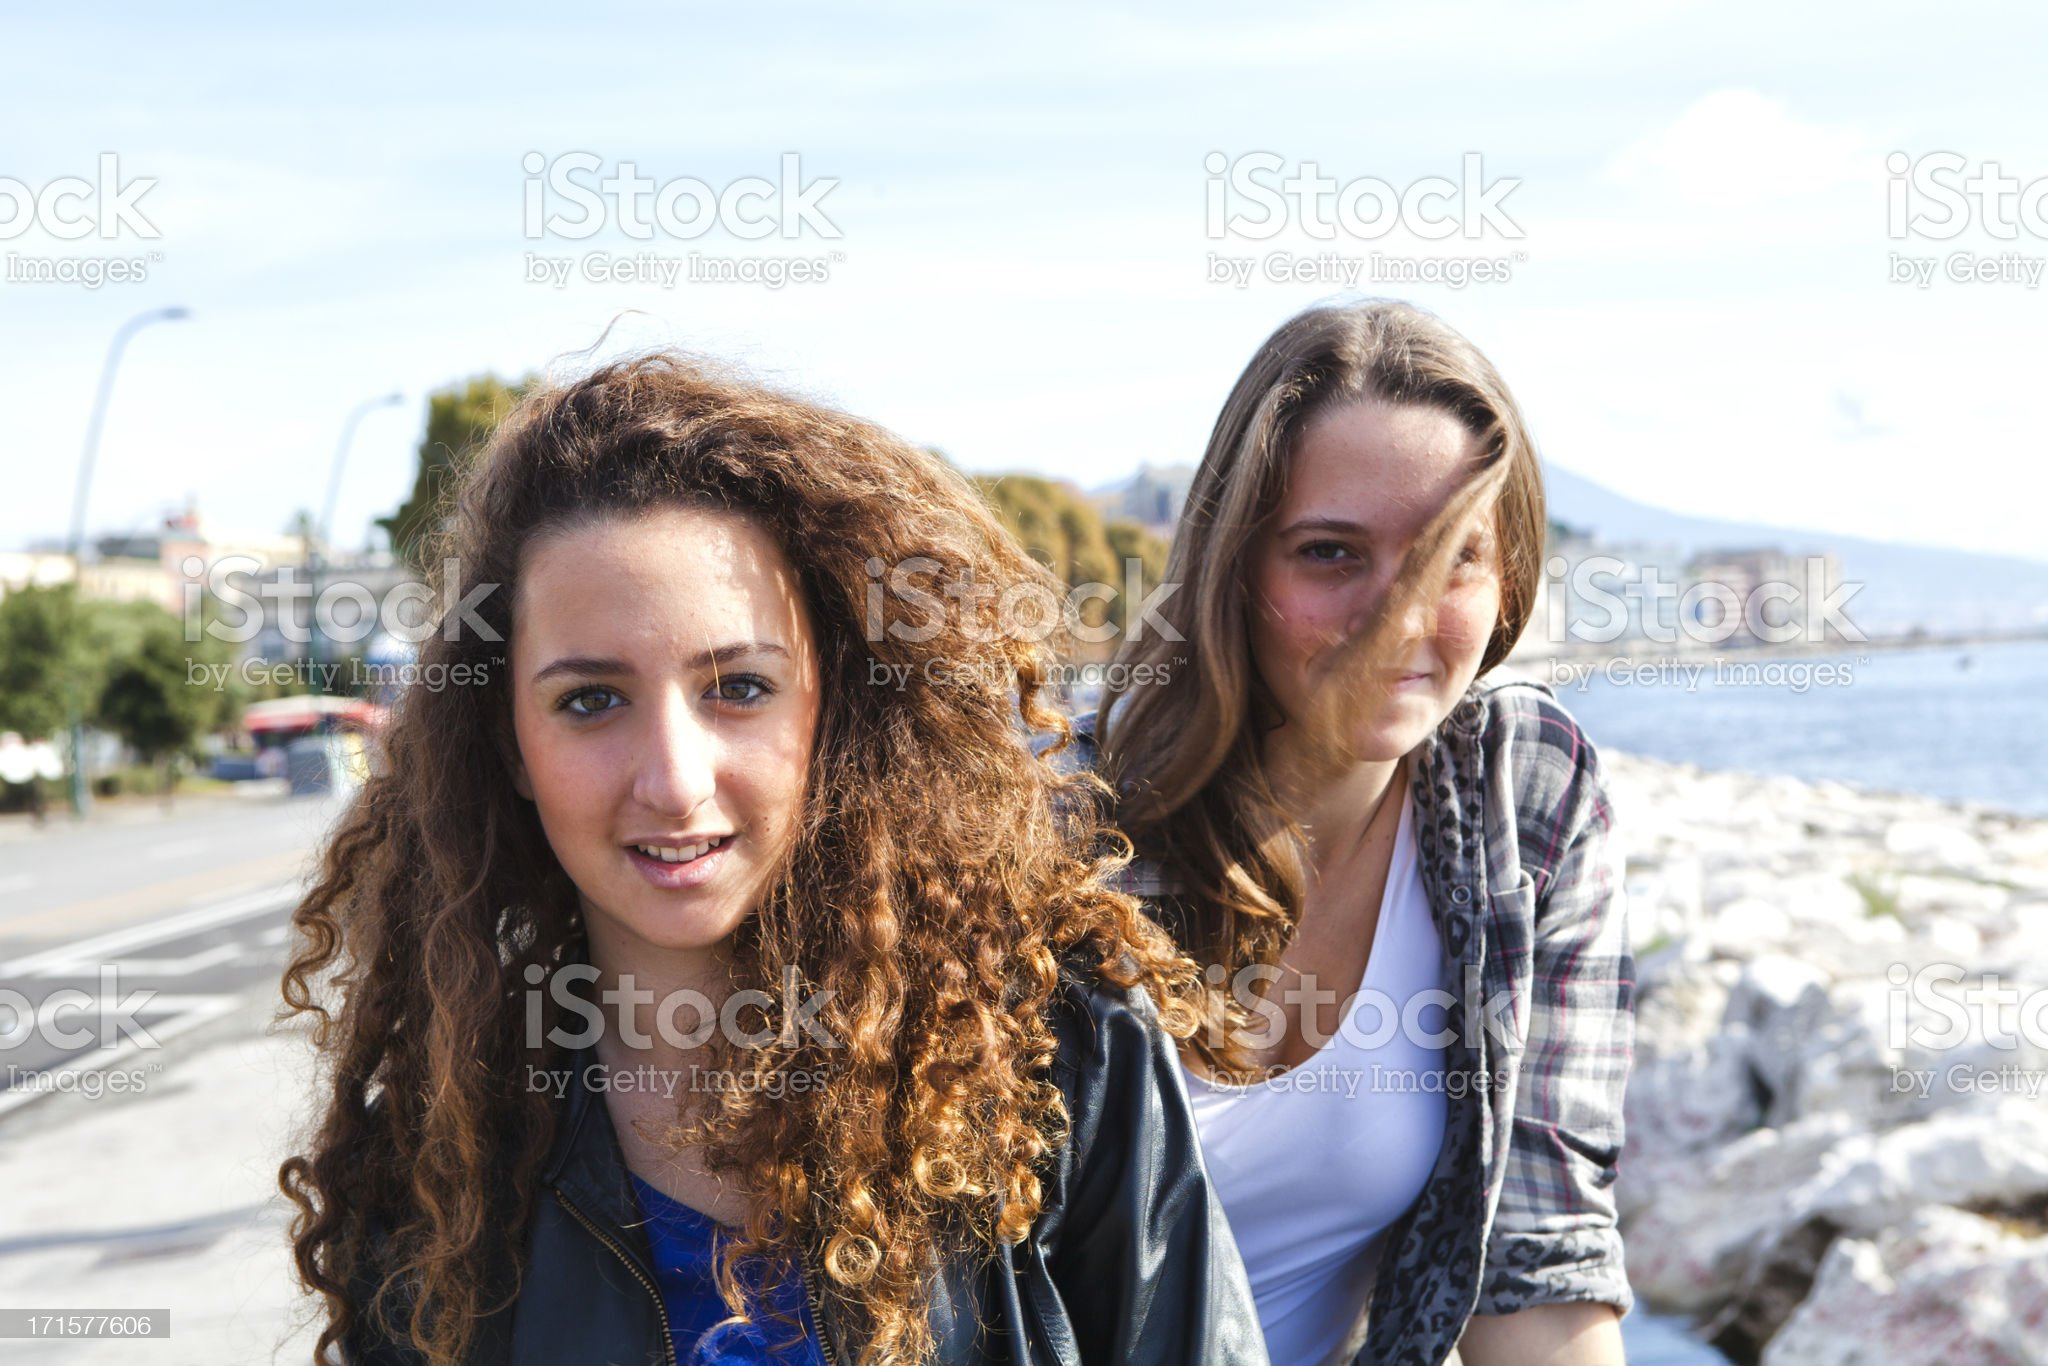 Two Beautiful Girls on Naples Promenade, Italy royalty-free stock photo